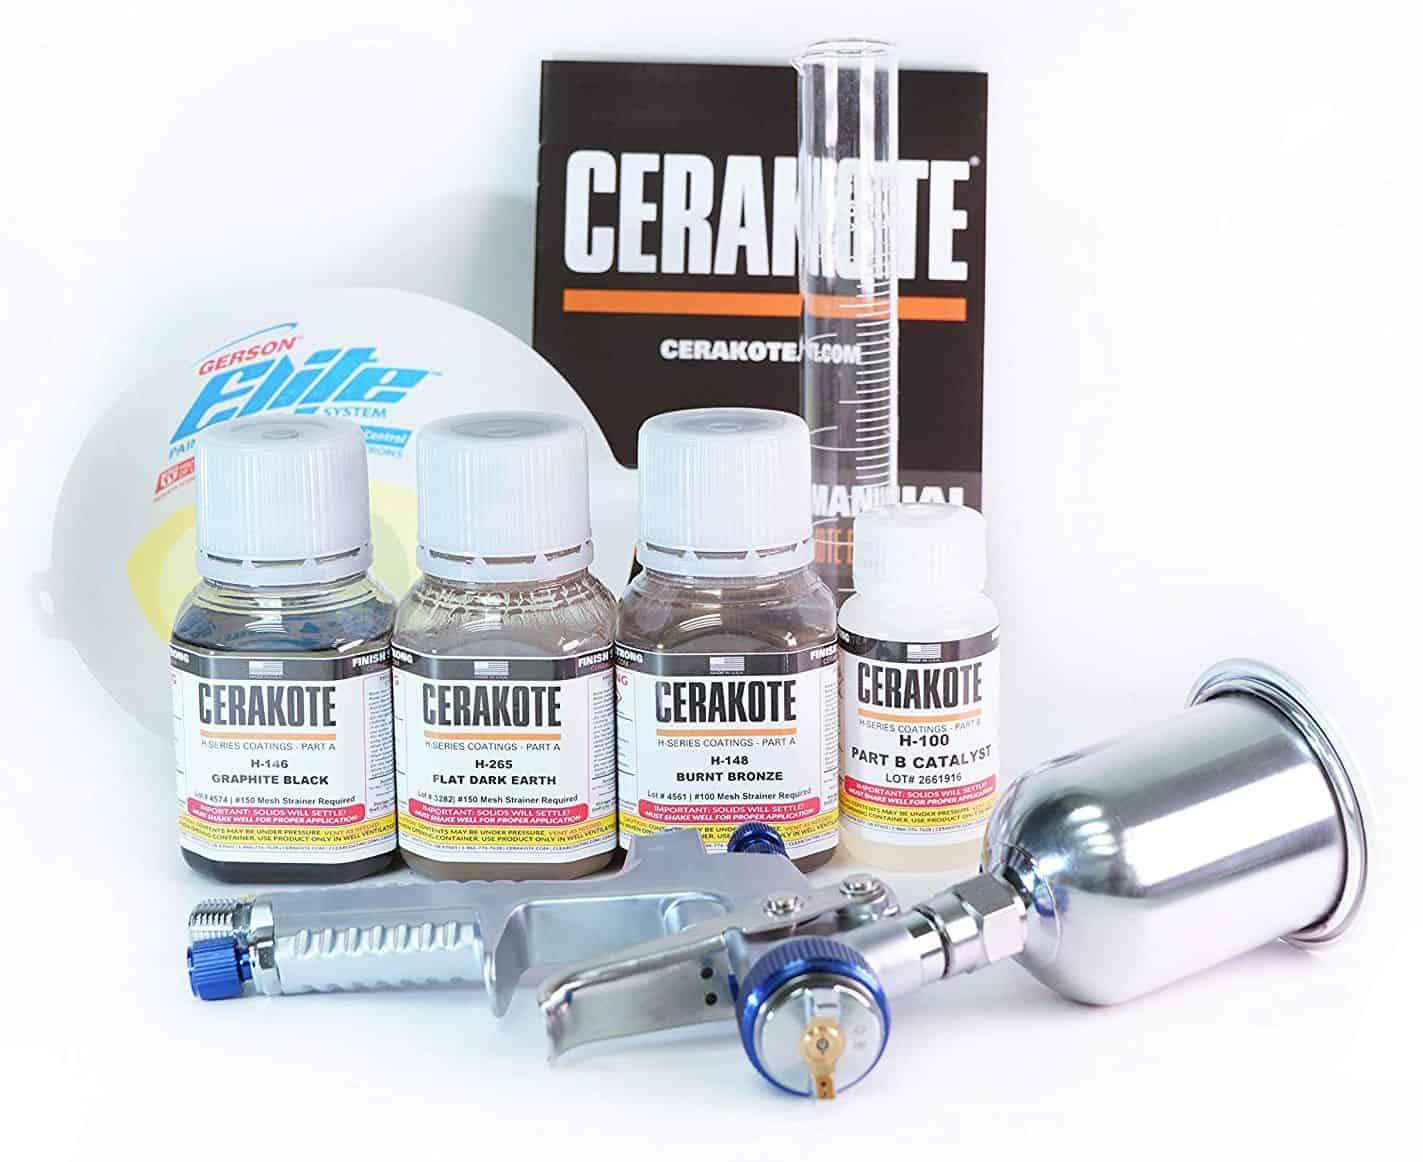 Cerakote Ceramic Coating Starter Kit